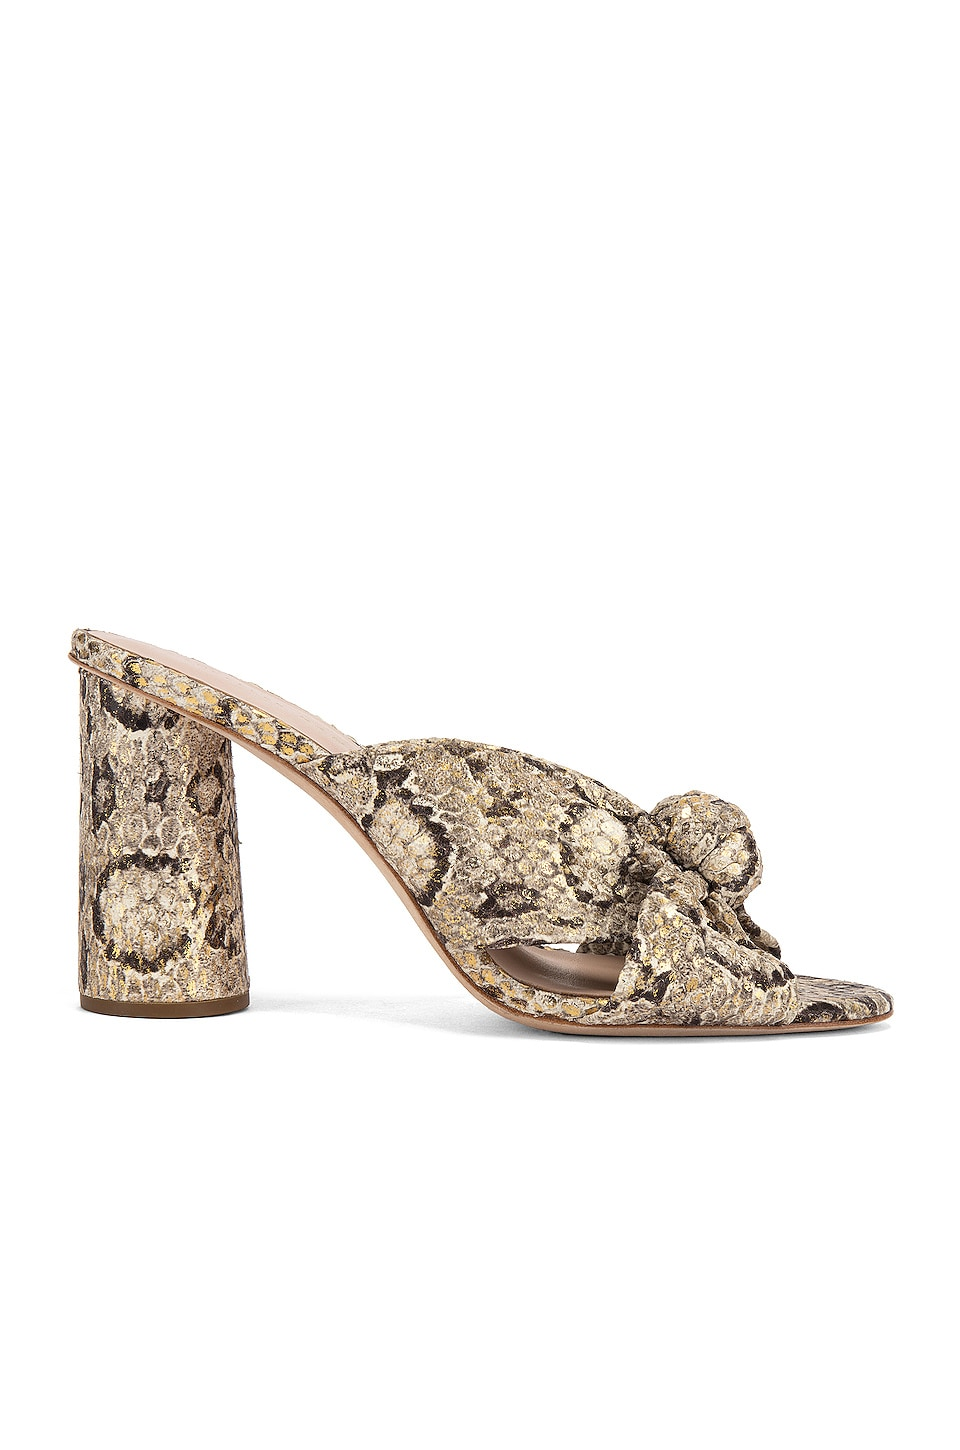 Loeffler Randall Coco High Heel Knot Mule in Champagne & Graphite